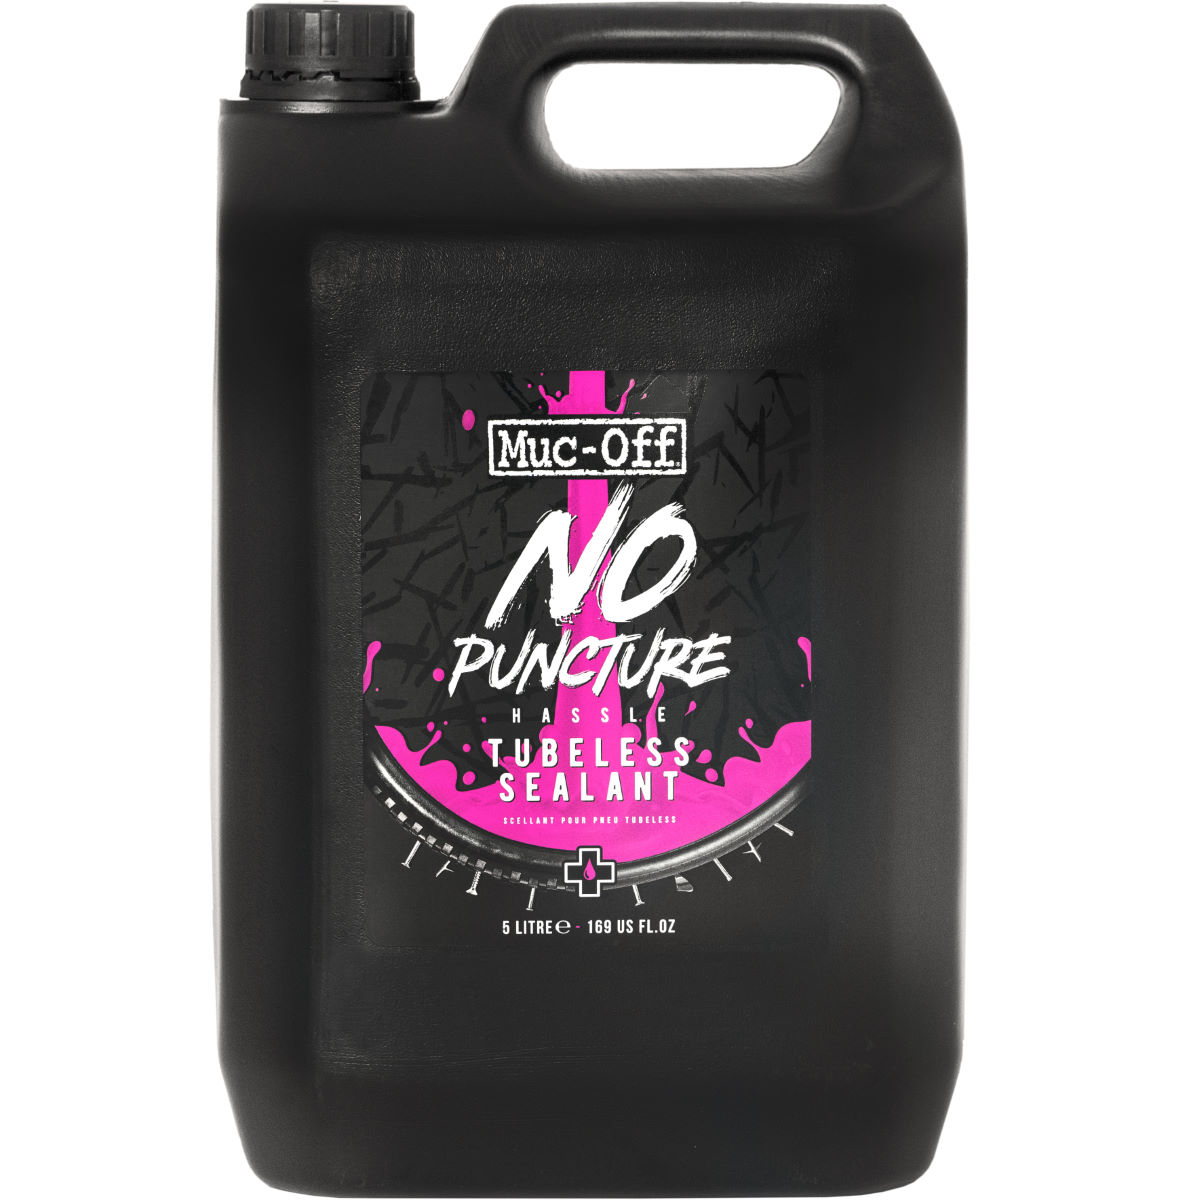 Muc-Off Muc-Off No Puncture Hassle 5L   Puncture Repair